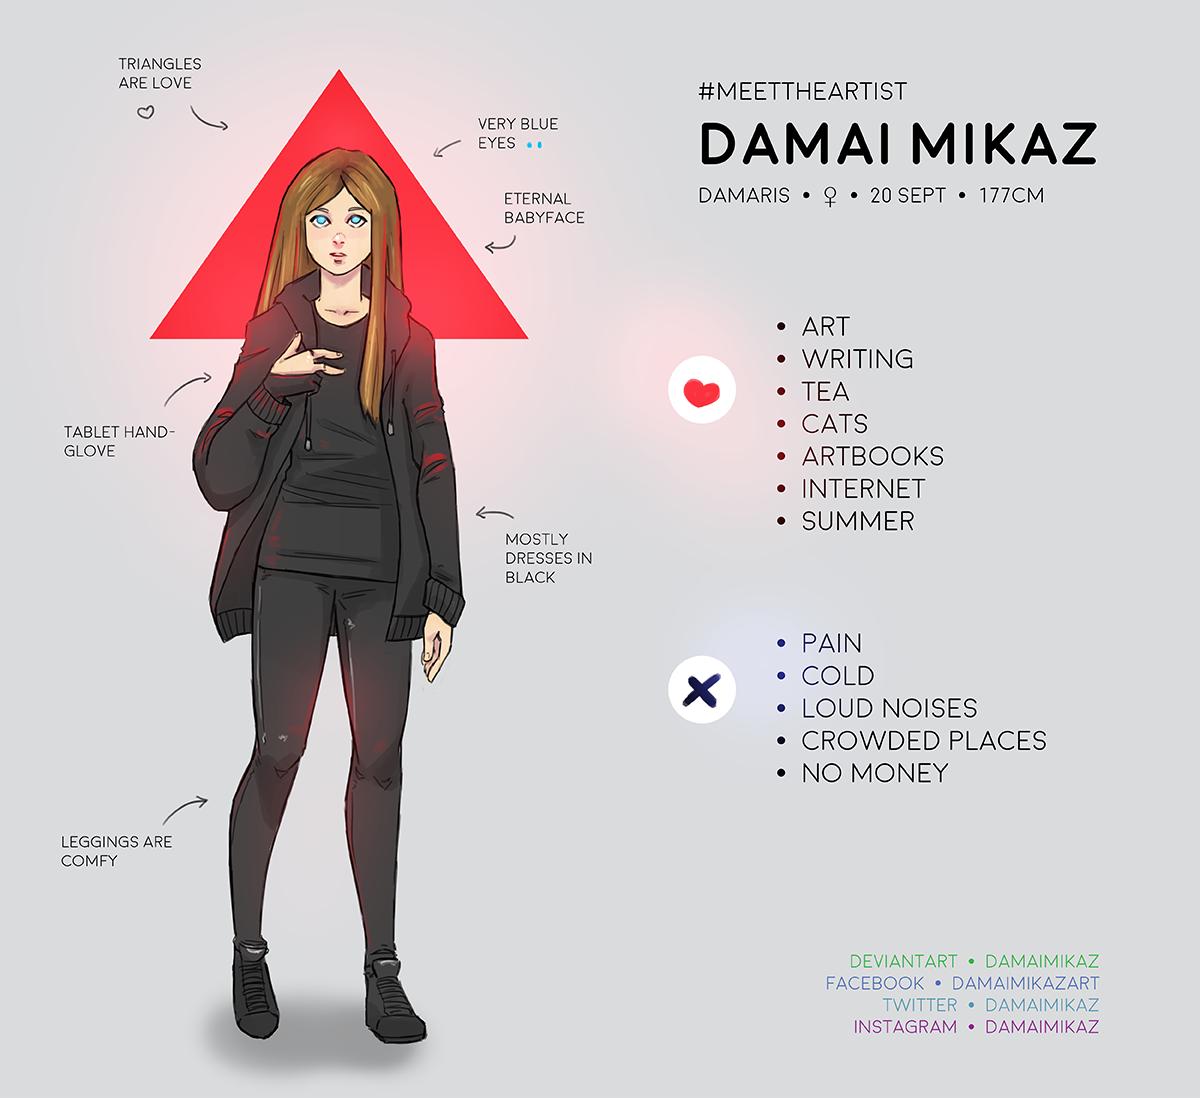 DamaiMikaz's Profile Picture